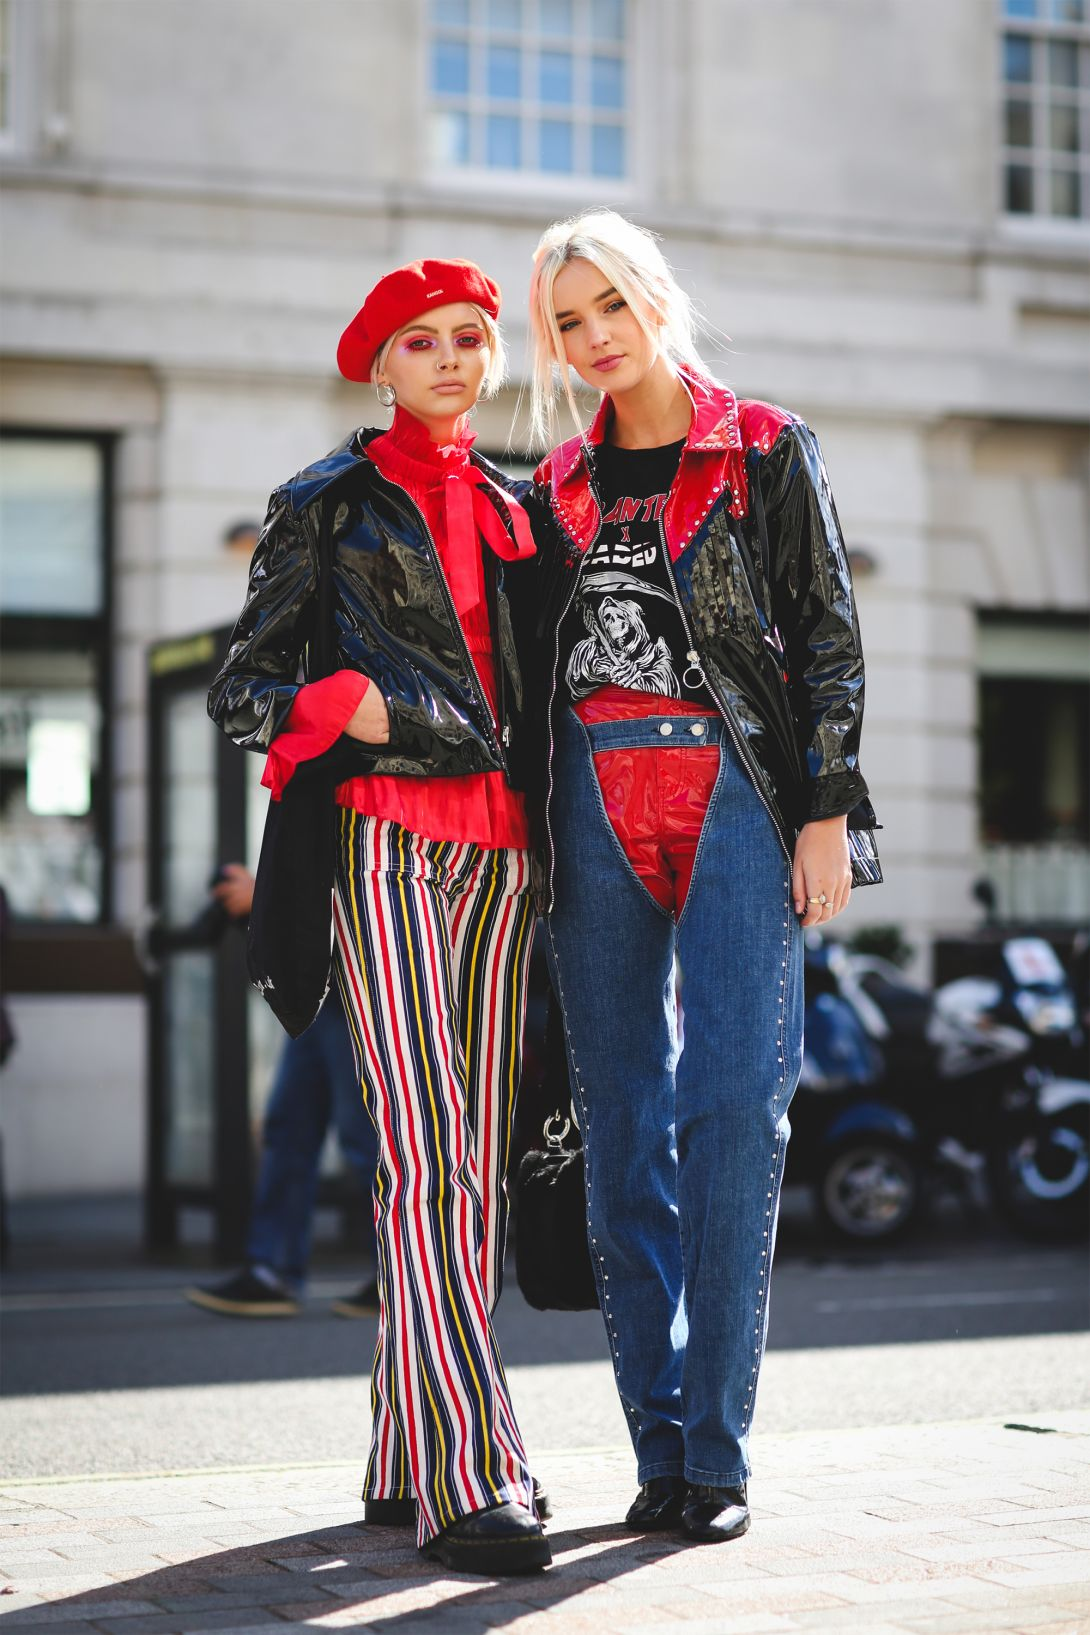 Denim Street Style From London Fashion Week Ss18 The Jeans Blog